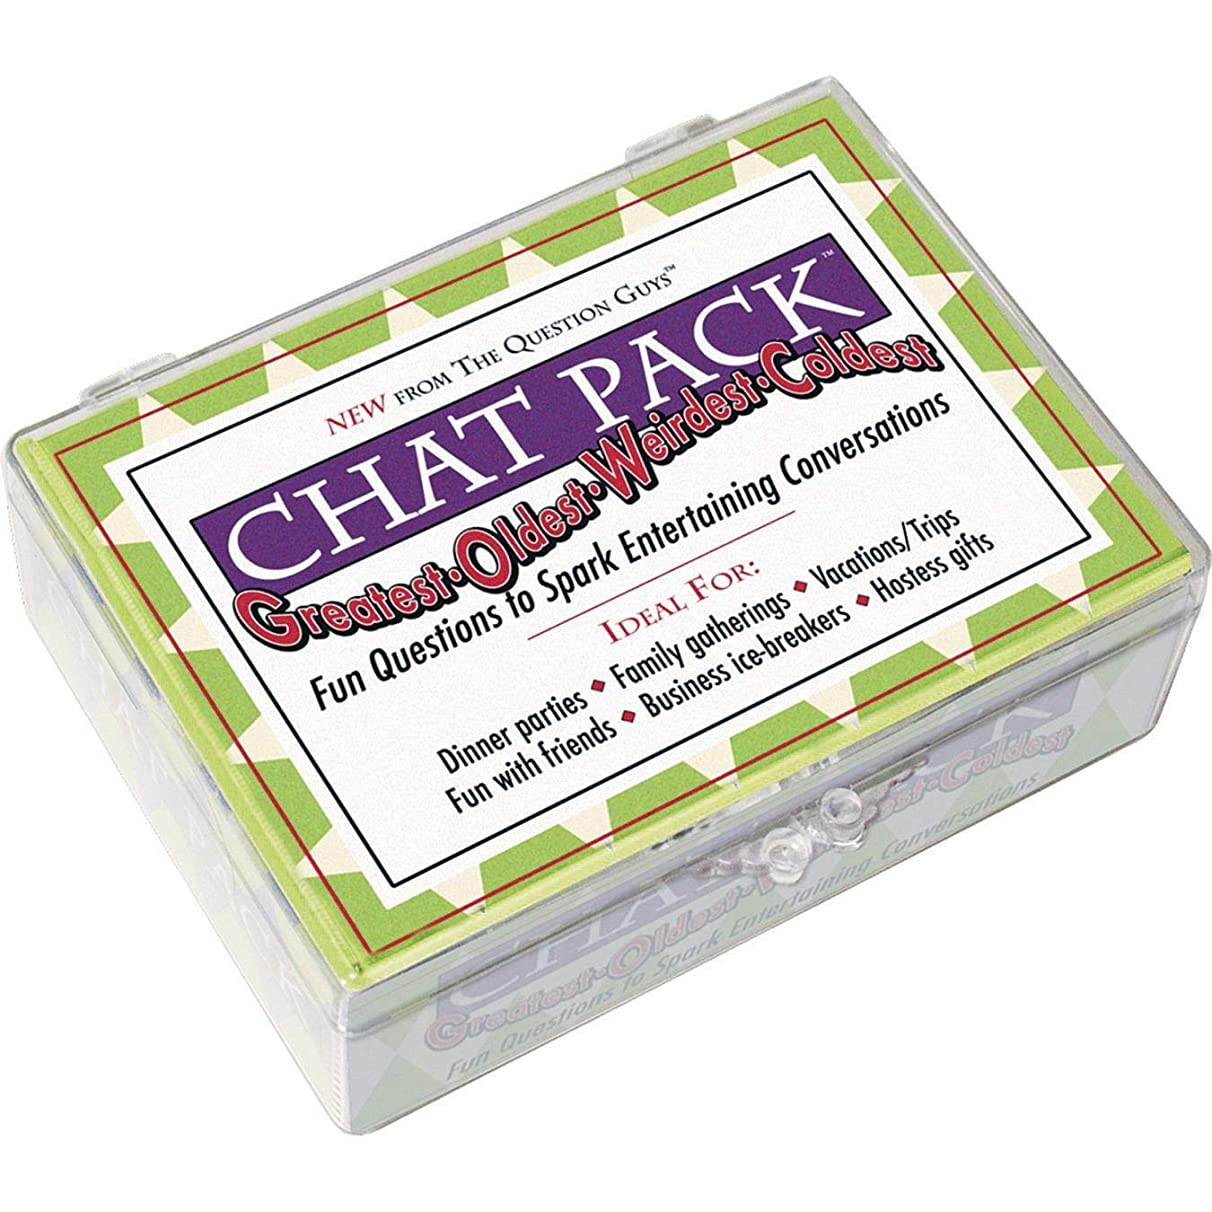 Chat Pack Greatest-Oldest-Weirdest-Coldest: Fun Questions to Spark Entertaining Conversations